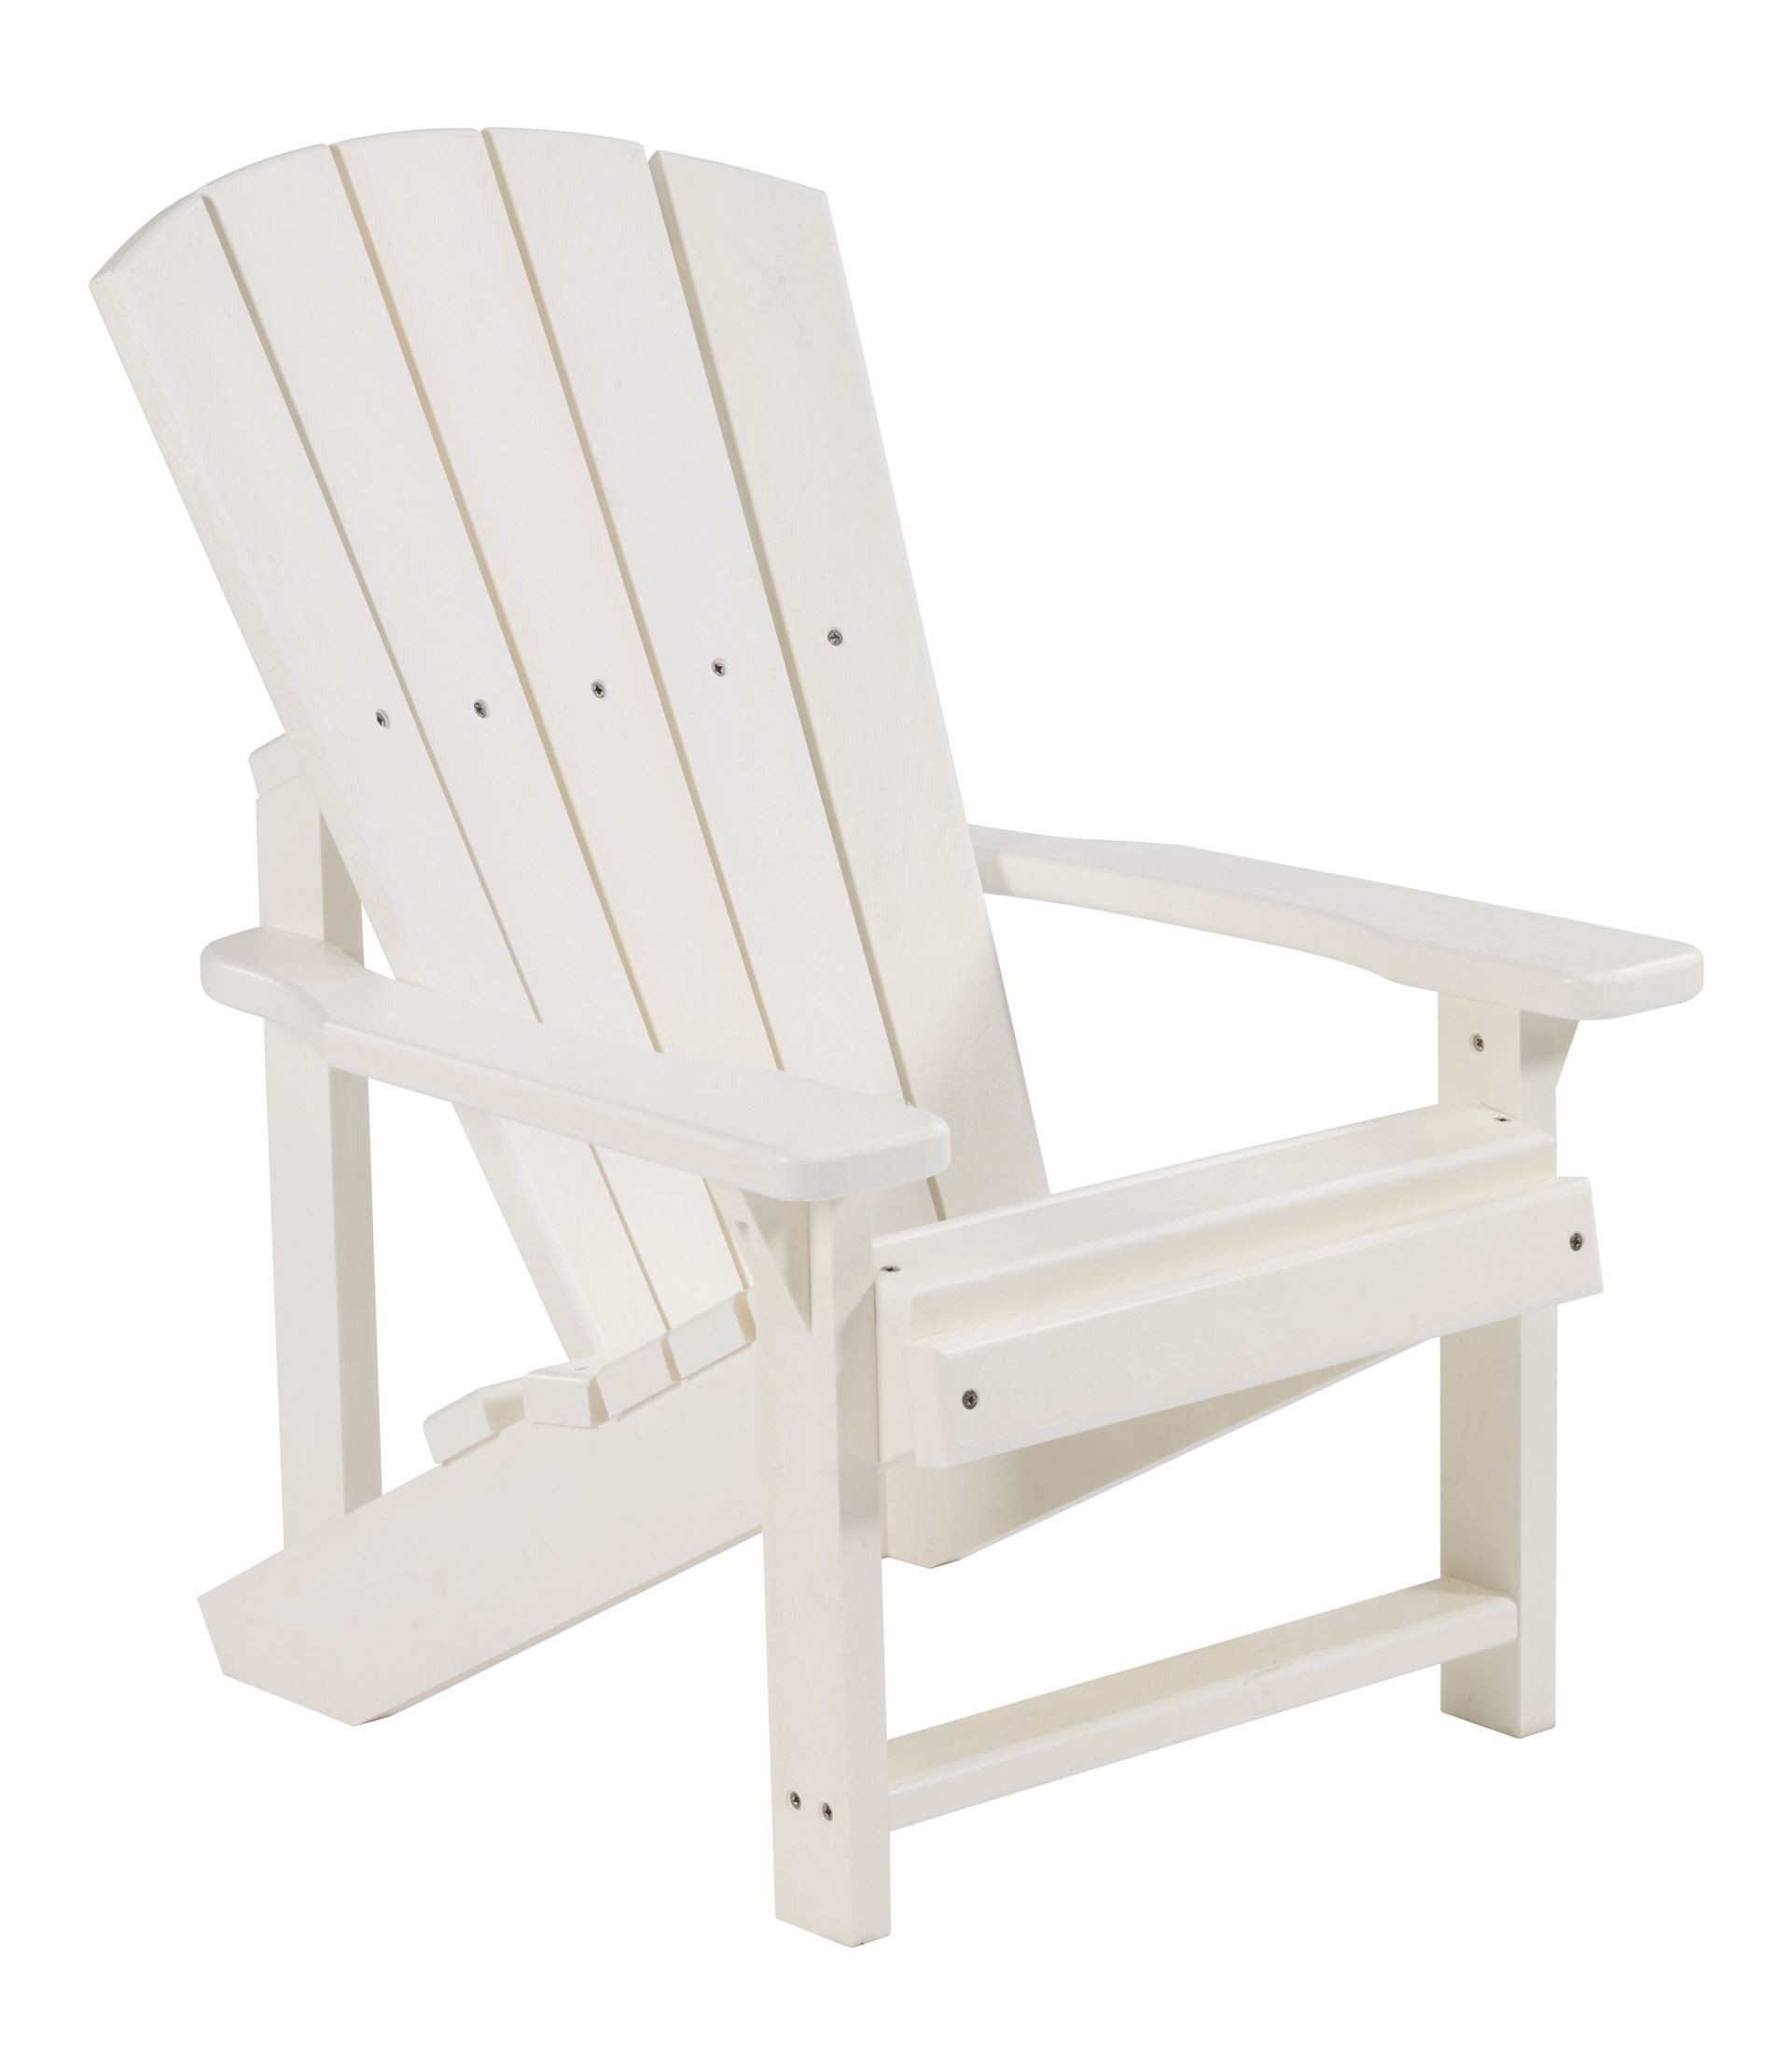 Generations white kids adirondack chair from cr plastic for White kids chair